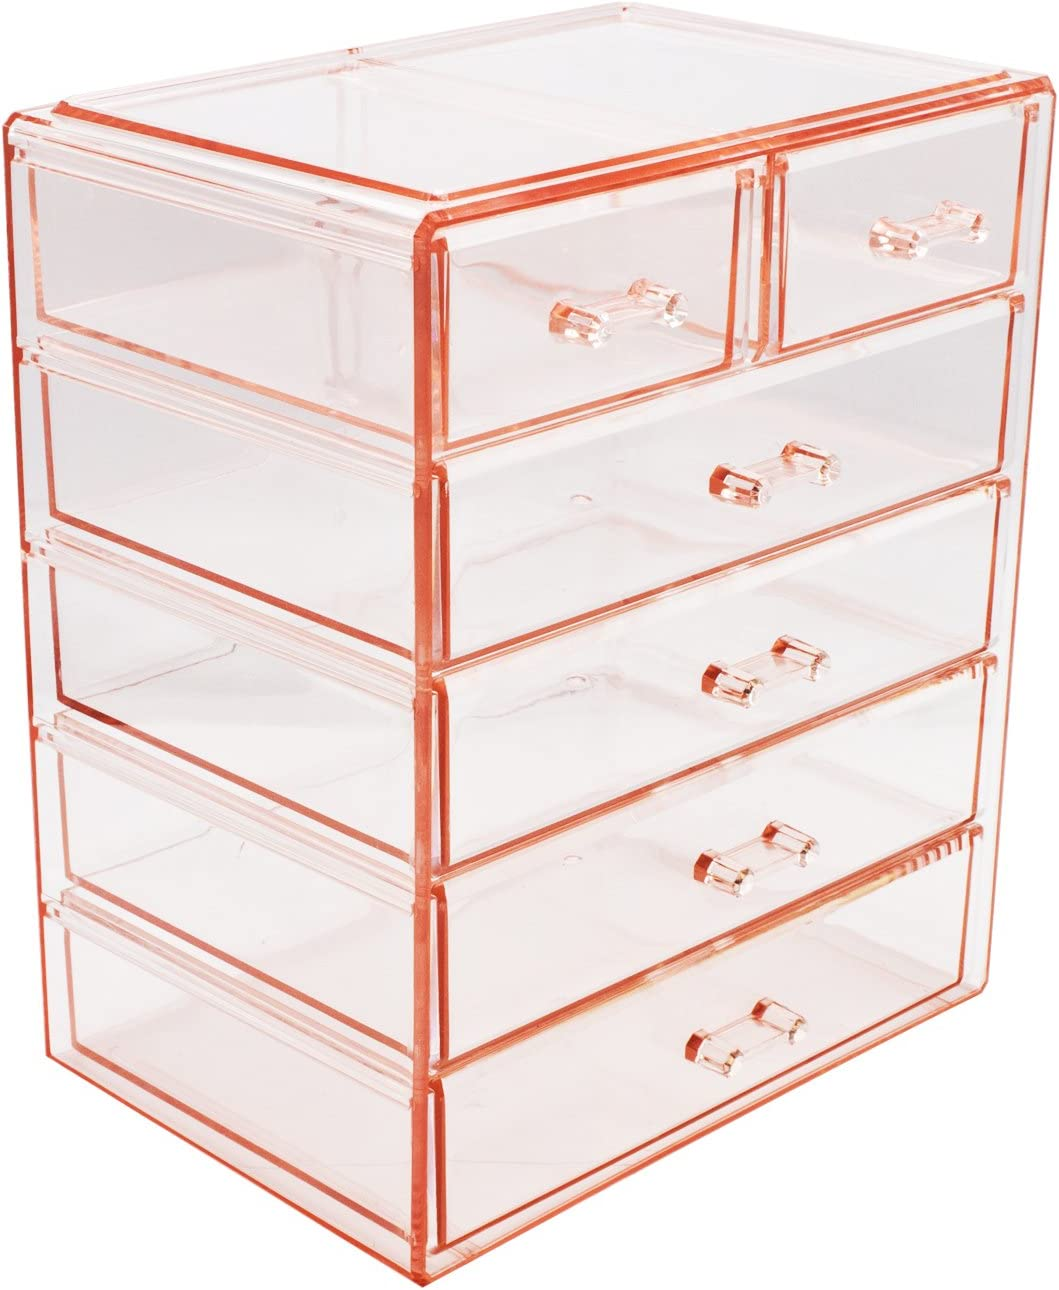 (4 Large, 2 Small Drawers, Pink) - Sorbus Cosmetics Makeup and Jewellery Big Pink Storage Case Display- 4 Large and 2 Small Drawers Space- Saving, Stylish Acrylic Bathroom Case